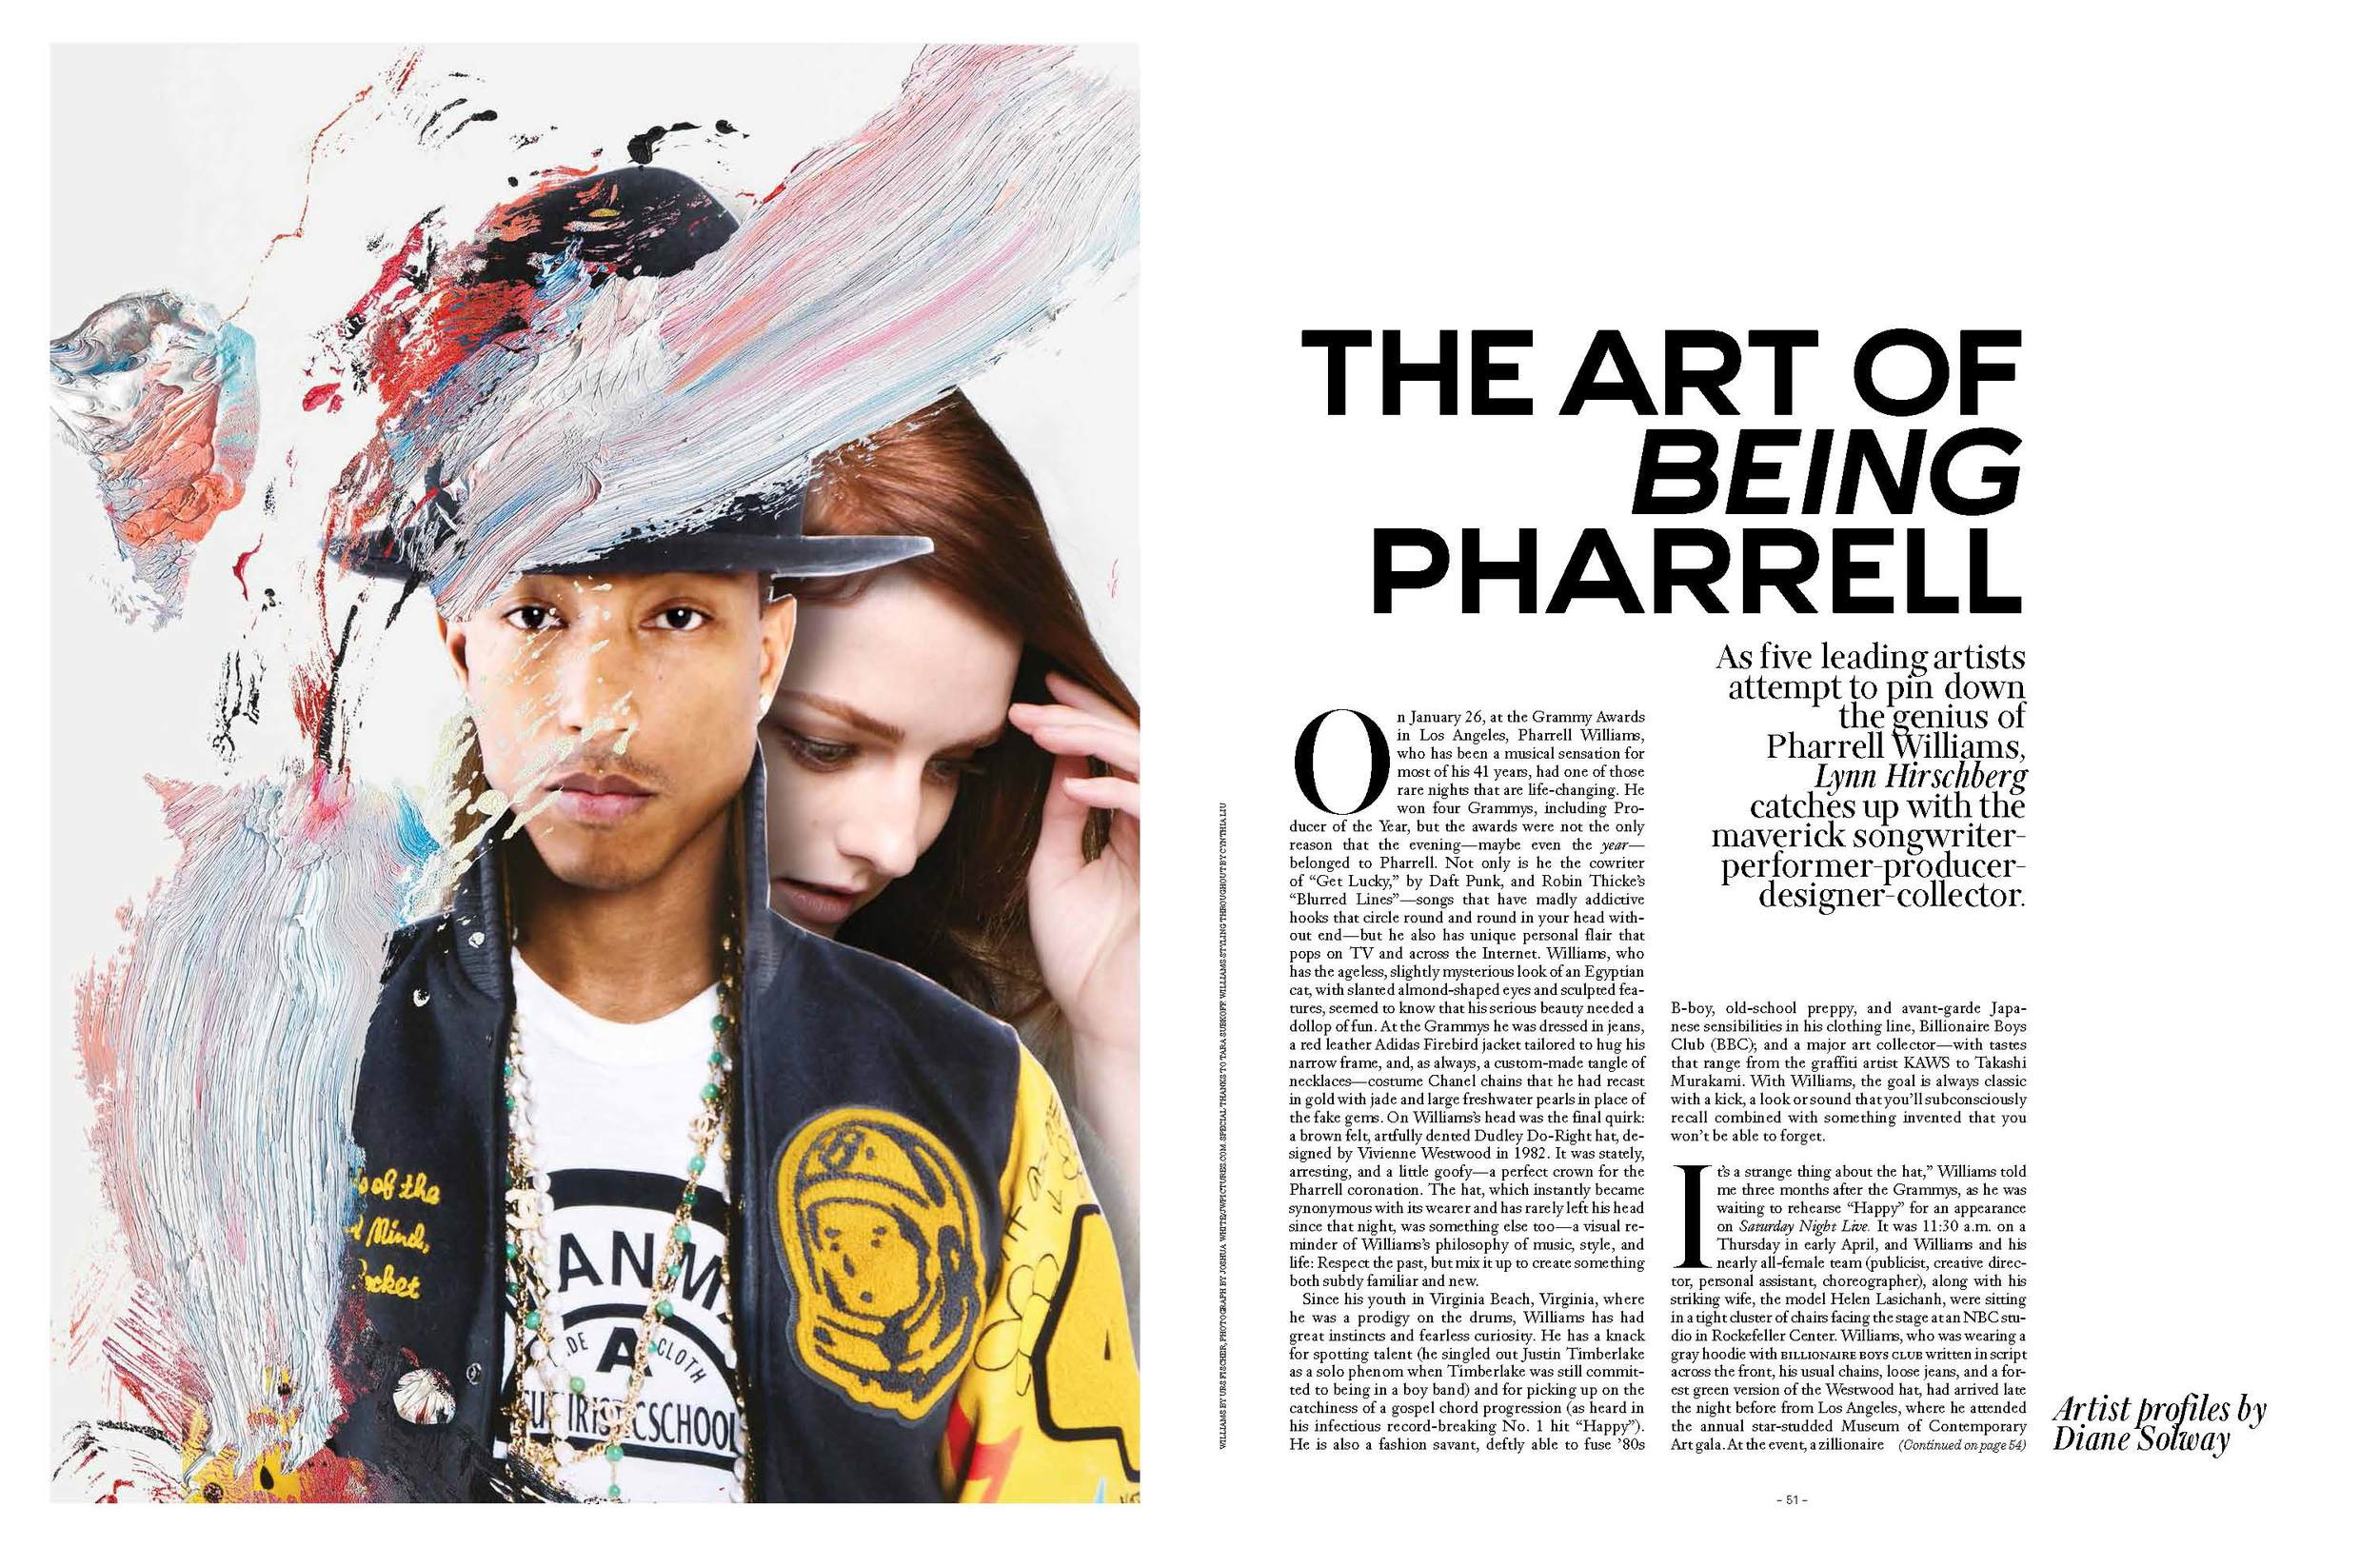 0614.art.w.pharrell.hi2.jpg